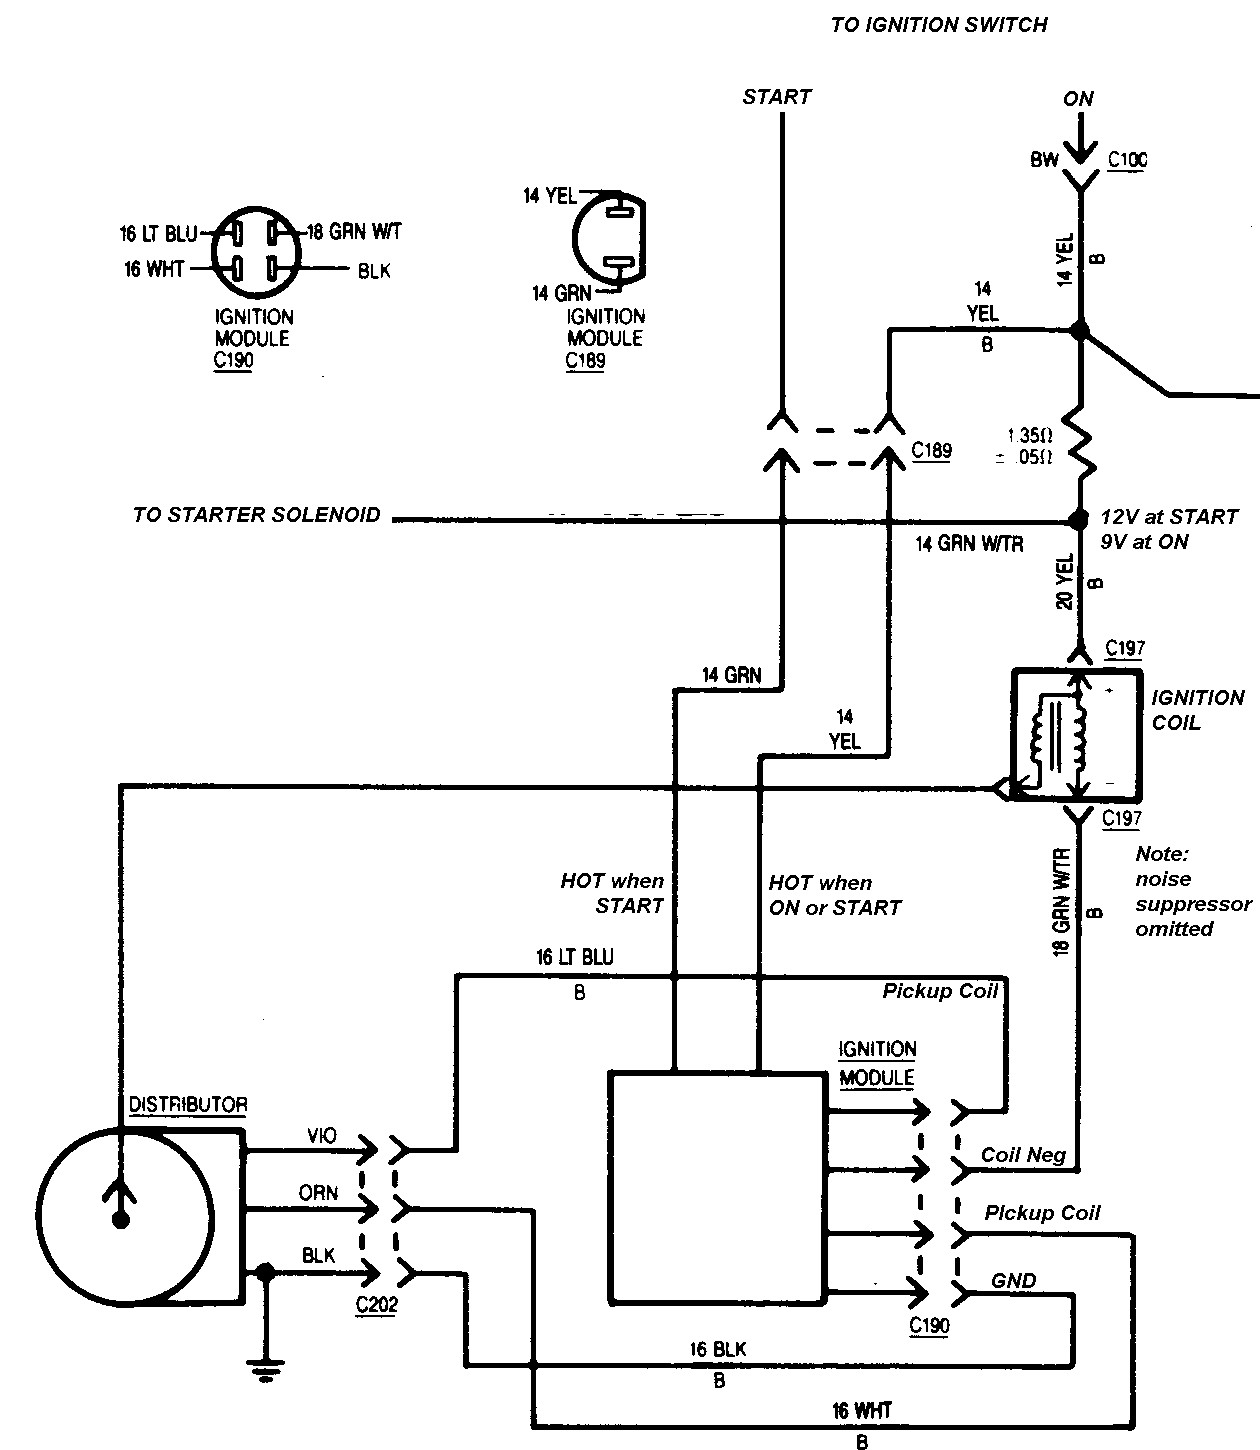 350 Tbi Wiring Diagram from 1.bp.blogspot.com